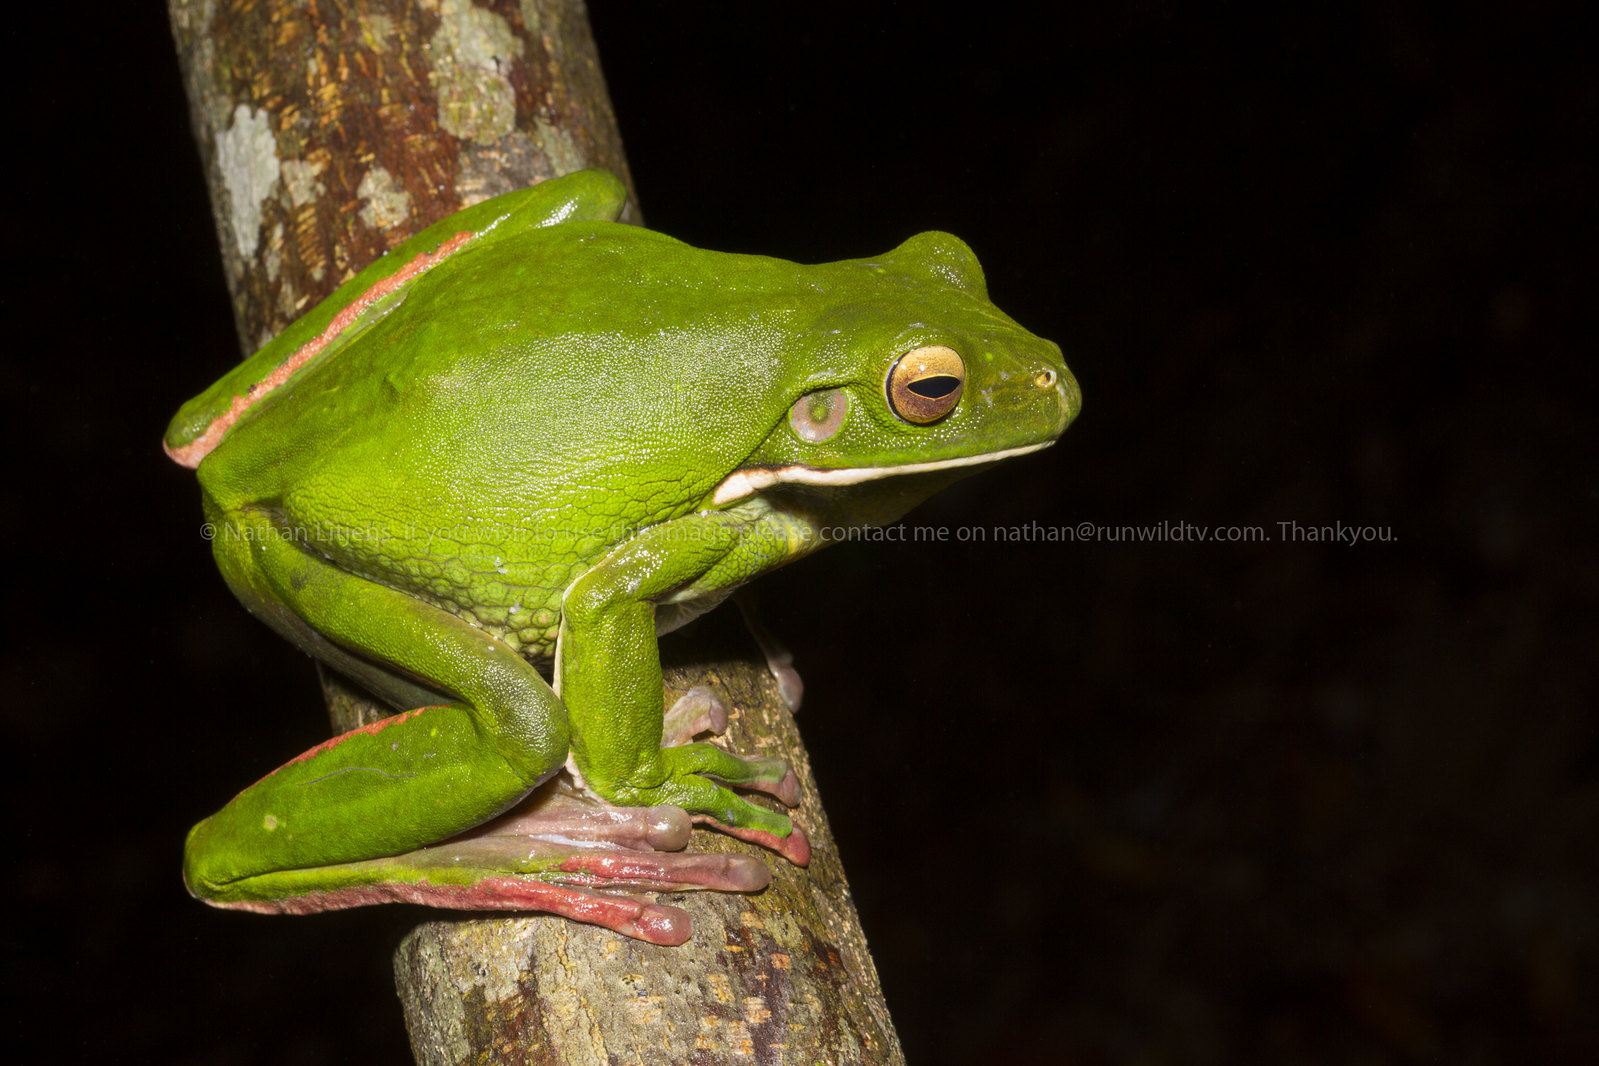 Giant [White Lipped] tree frog (Litoria infrafrenata)